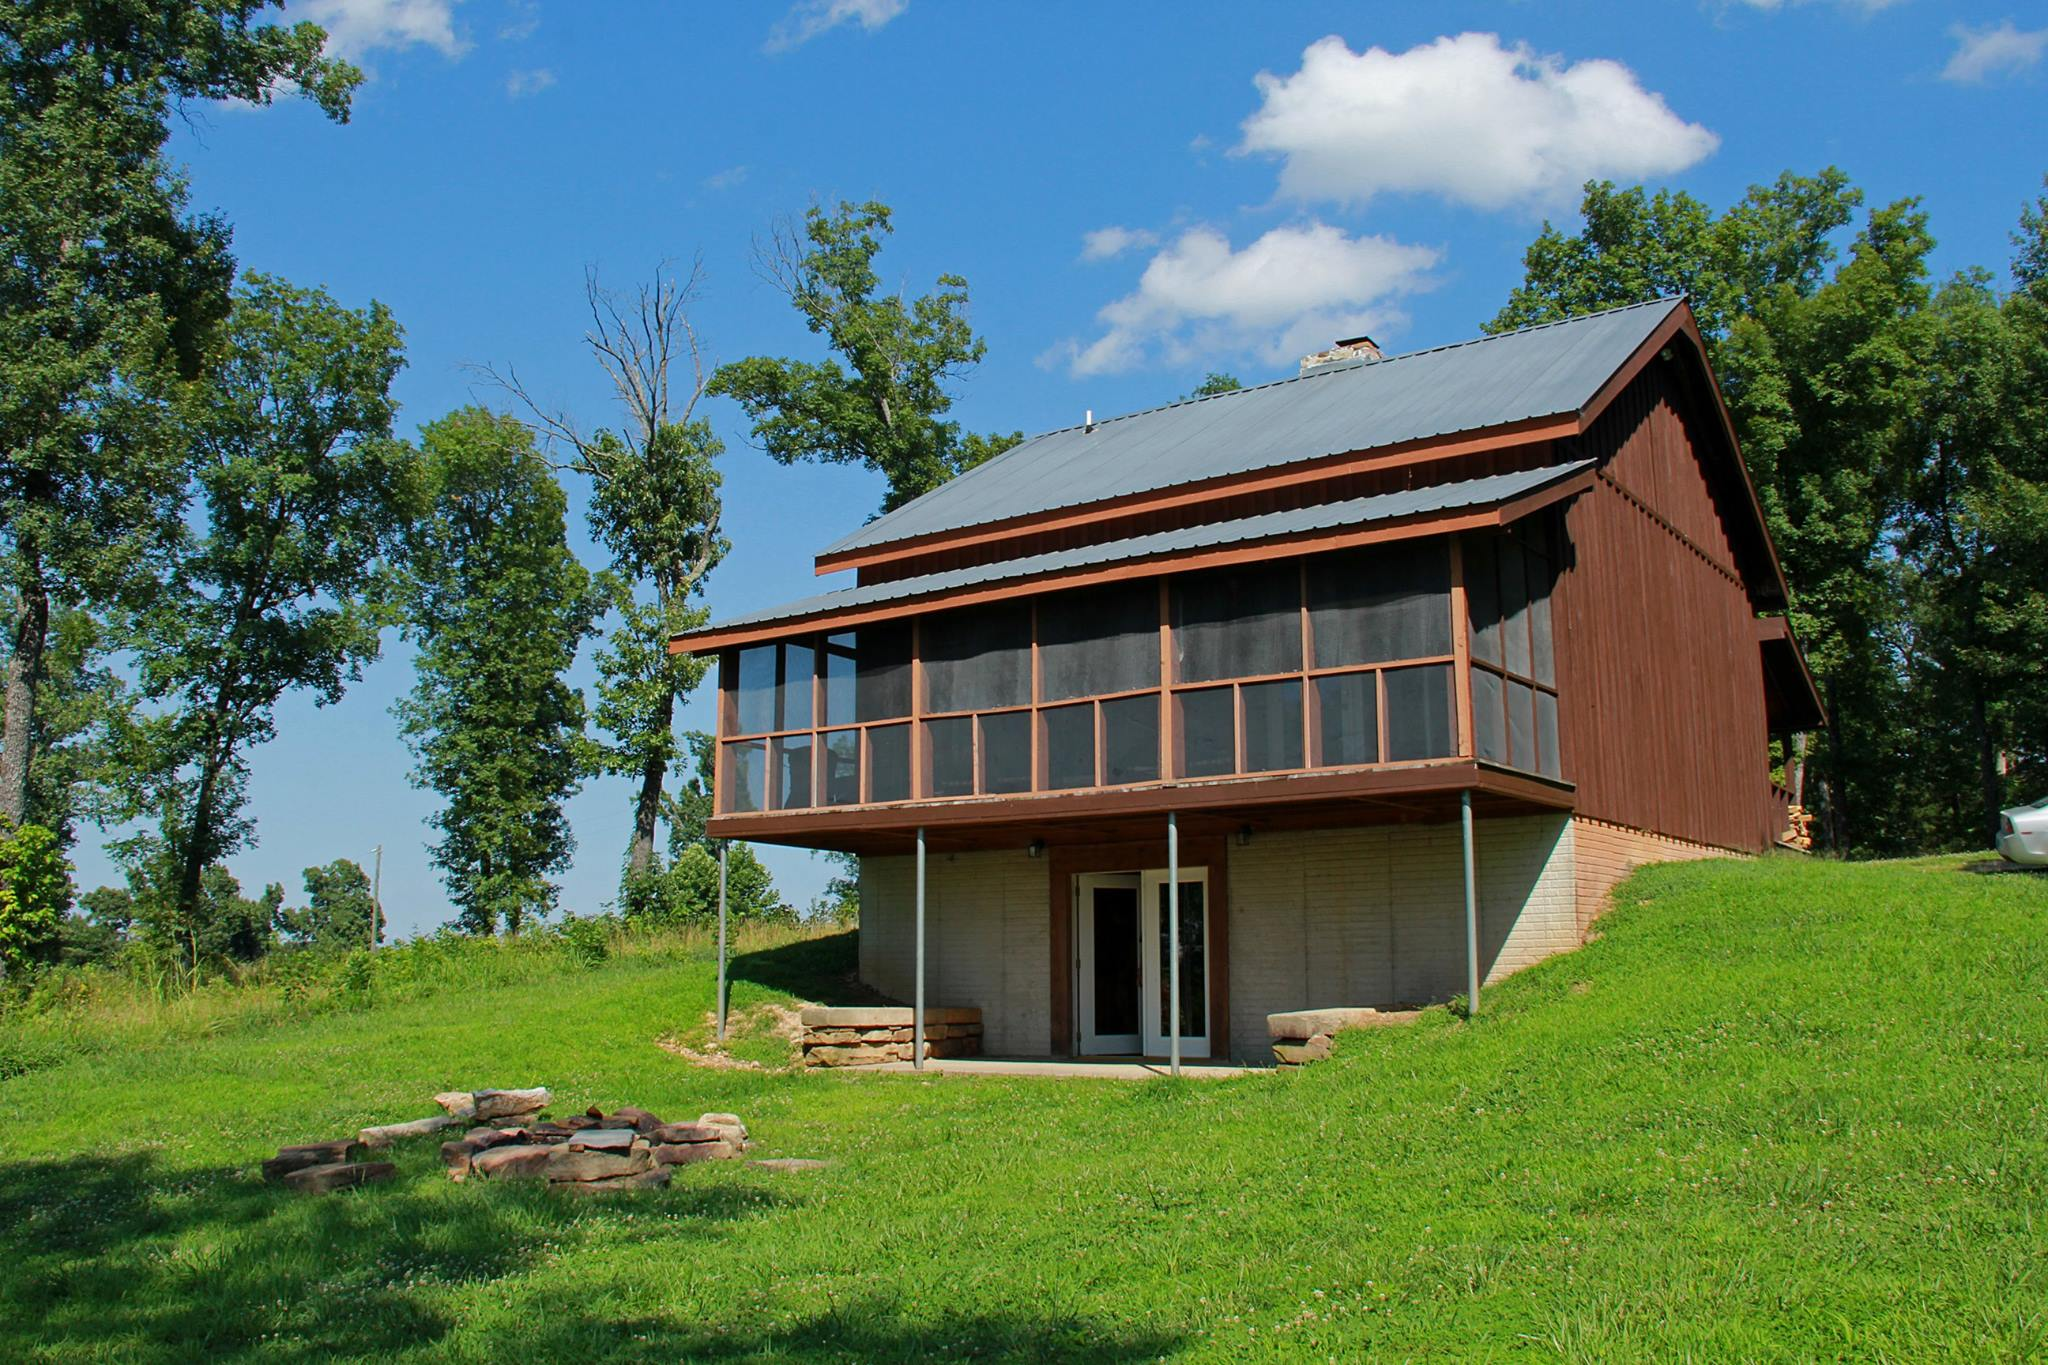 cabin kenzy kenzys lakeview ozarks hills wilderness s rentals cabins mb of the overlooking luxury whispering log lake